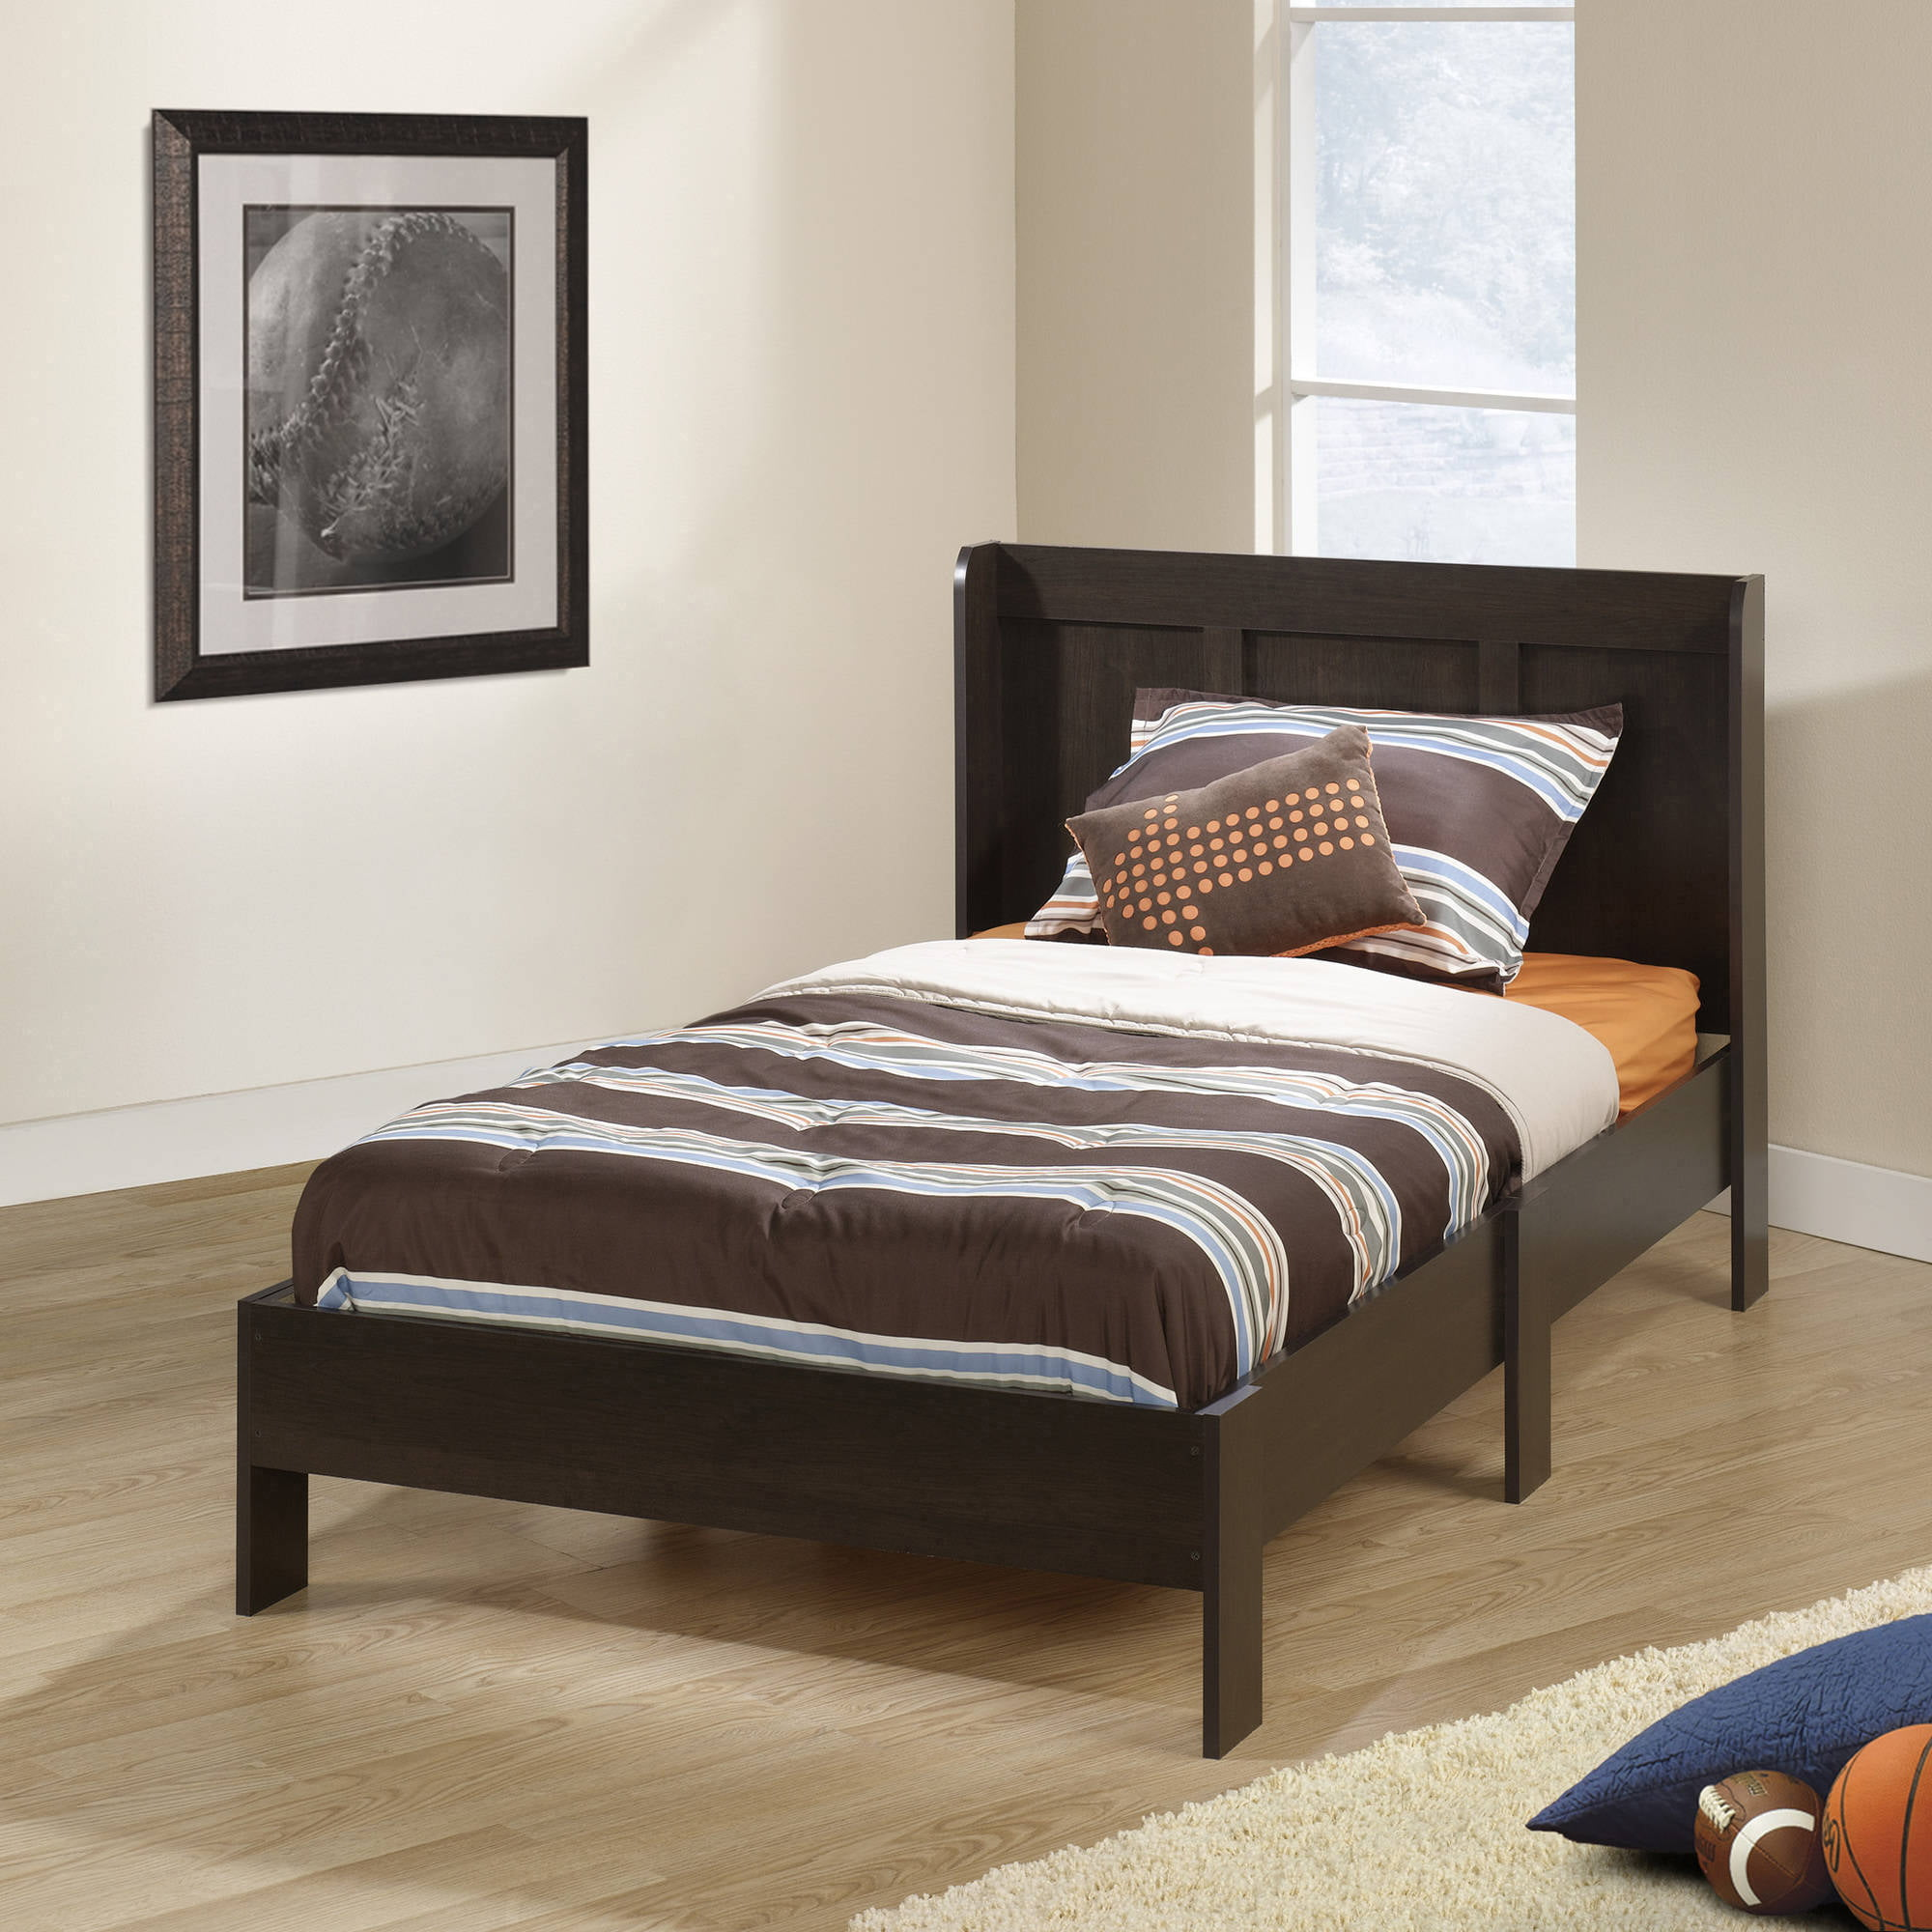 acme furniture dontao wood twin bed multiple colors walmart com